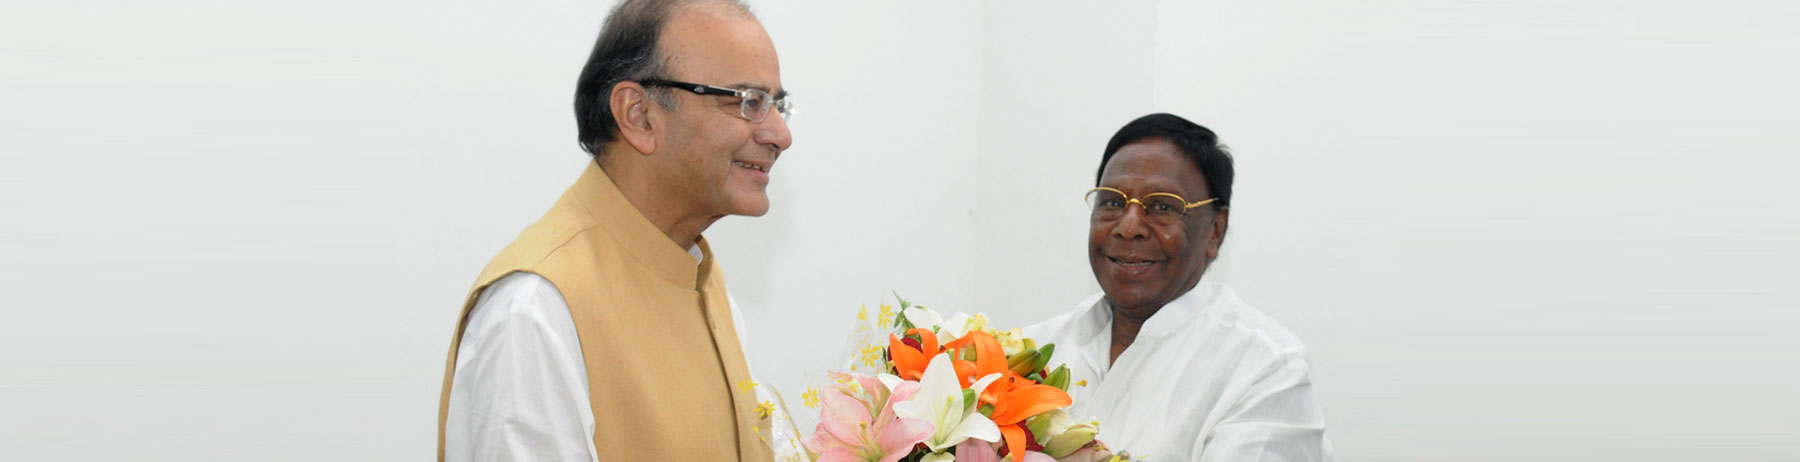 The Chief Minister of Puducherry, Shri V. Narayanasamy calling on the Union Minister for Finance, Shri Arun Jaitley, in New Delhi